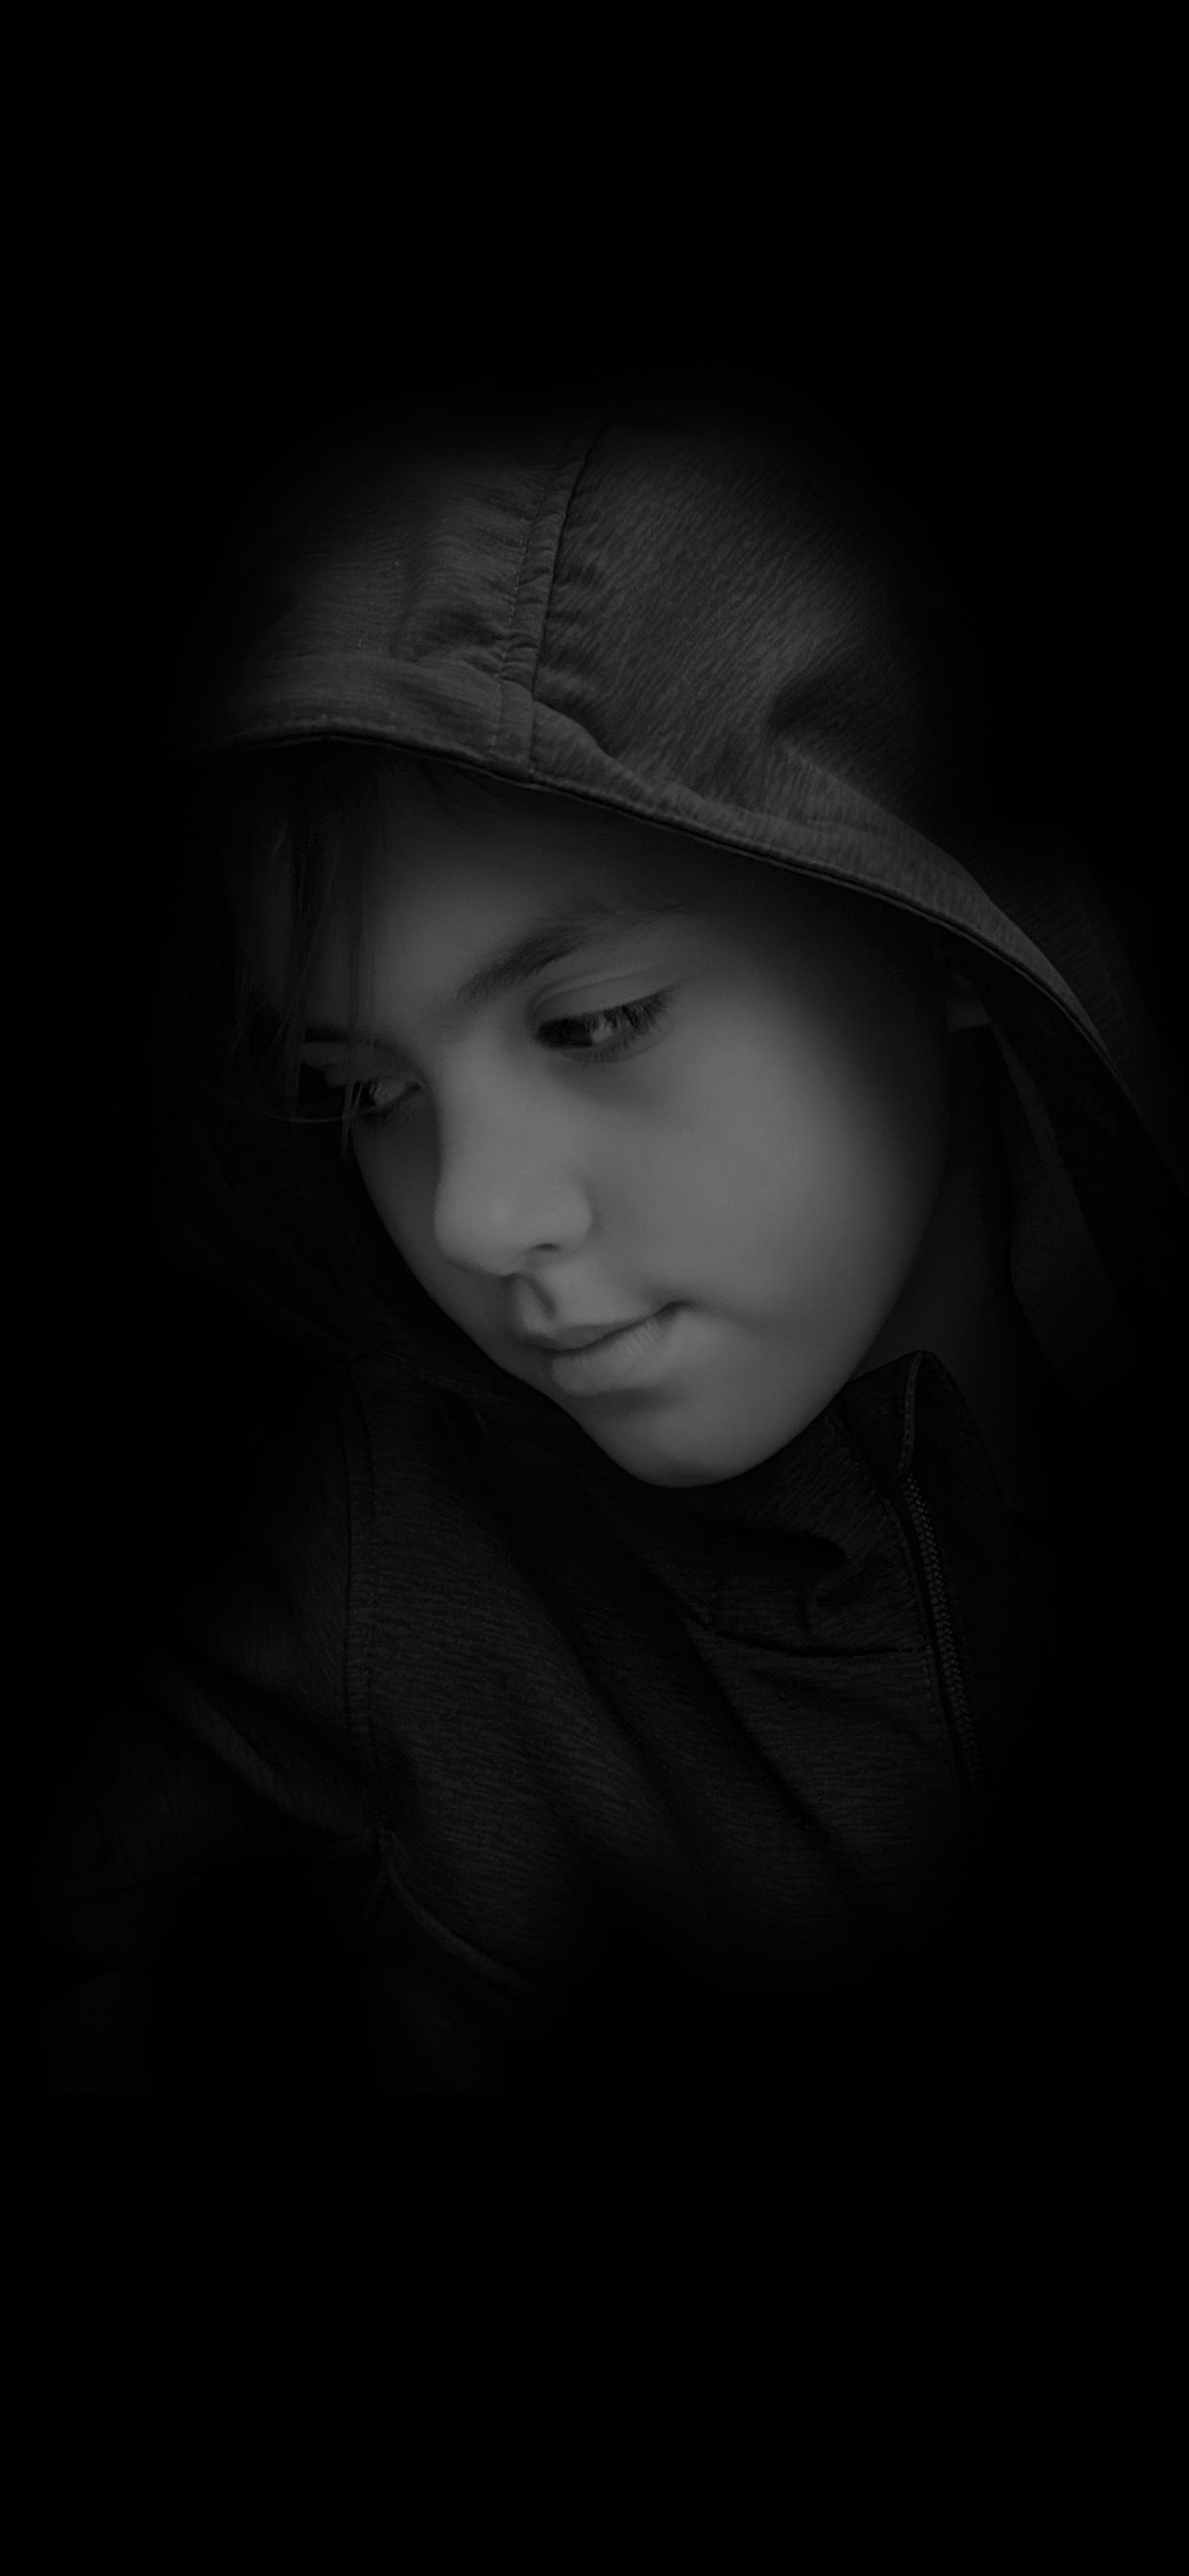 childhood, child, one person, portrait, headshot, indoors, boys, innocence, cute, lifestyles, girls, front view, real people, men, males, dark, close-up, hood - clothing, black background, contemplation